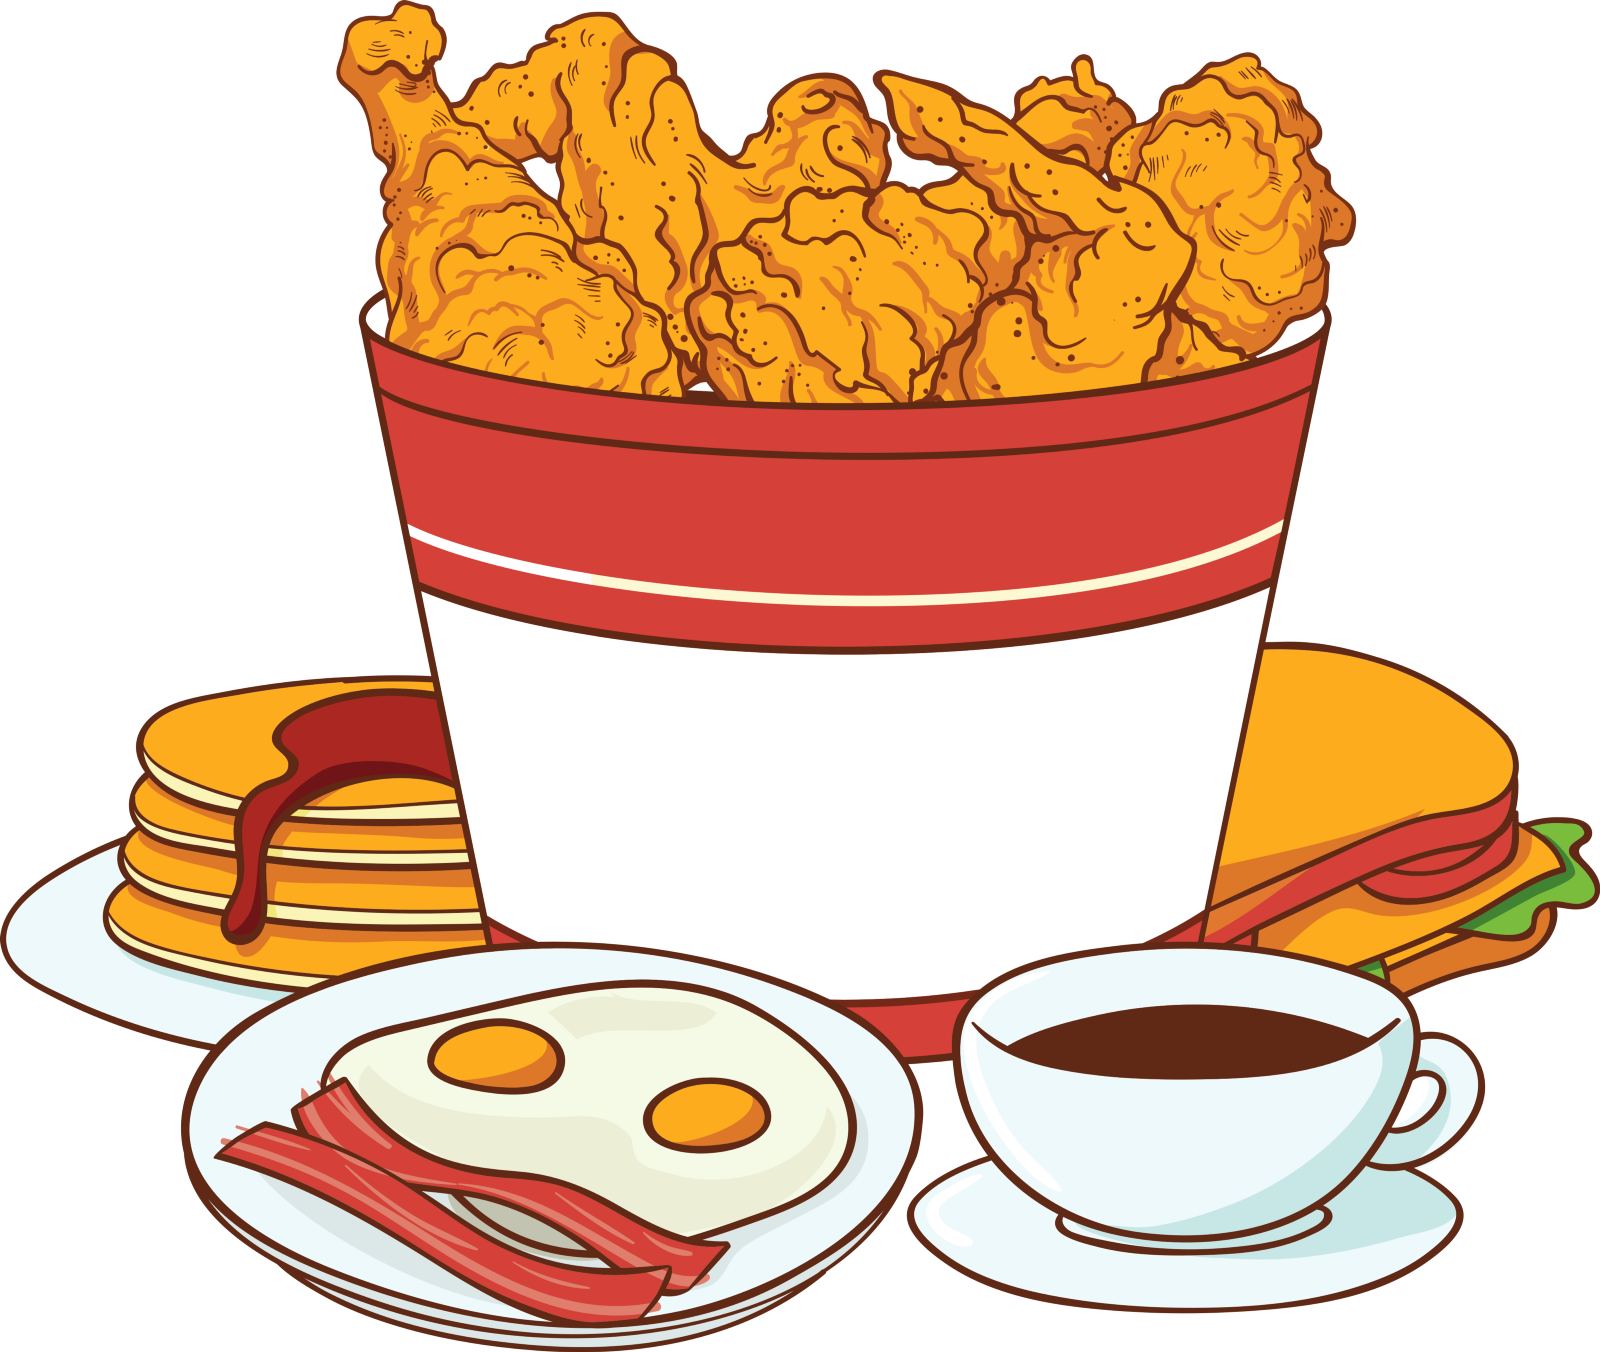 Fries clipart fat food, Fries fat food Transparent FREE for.